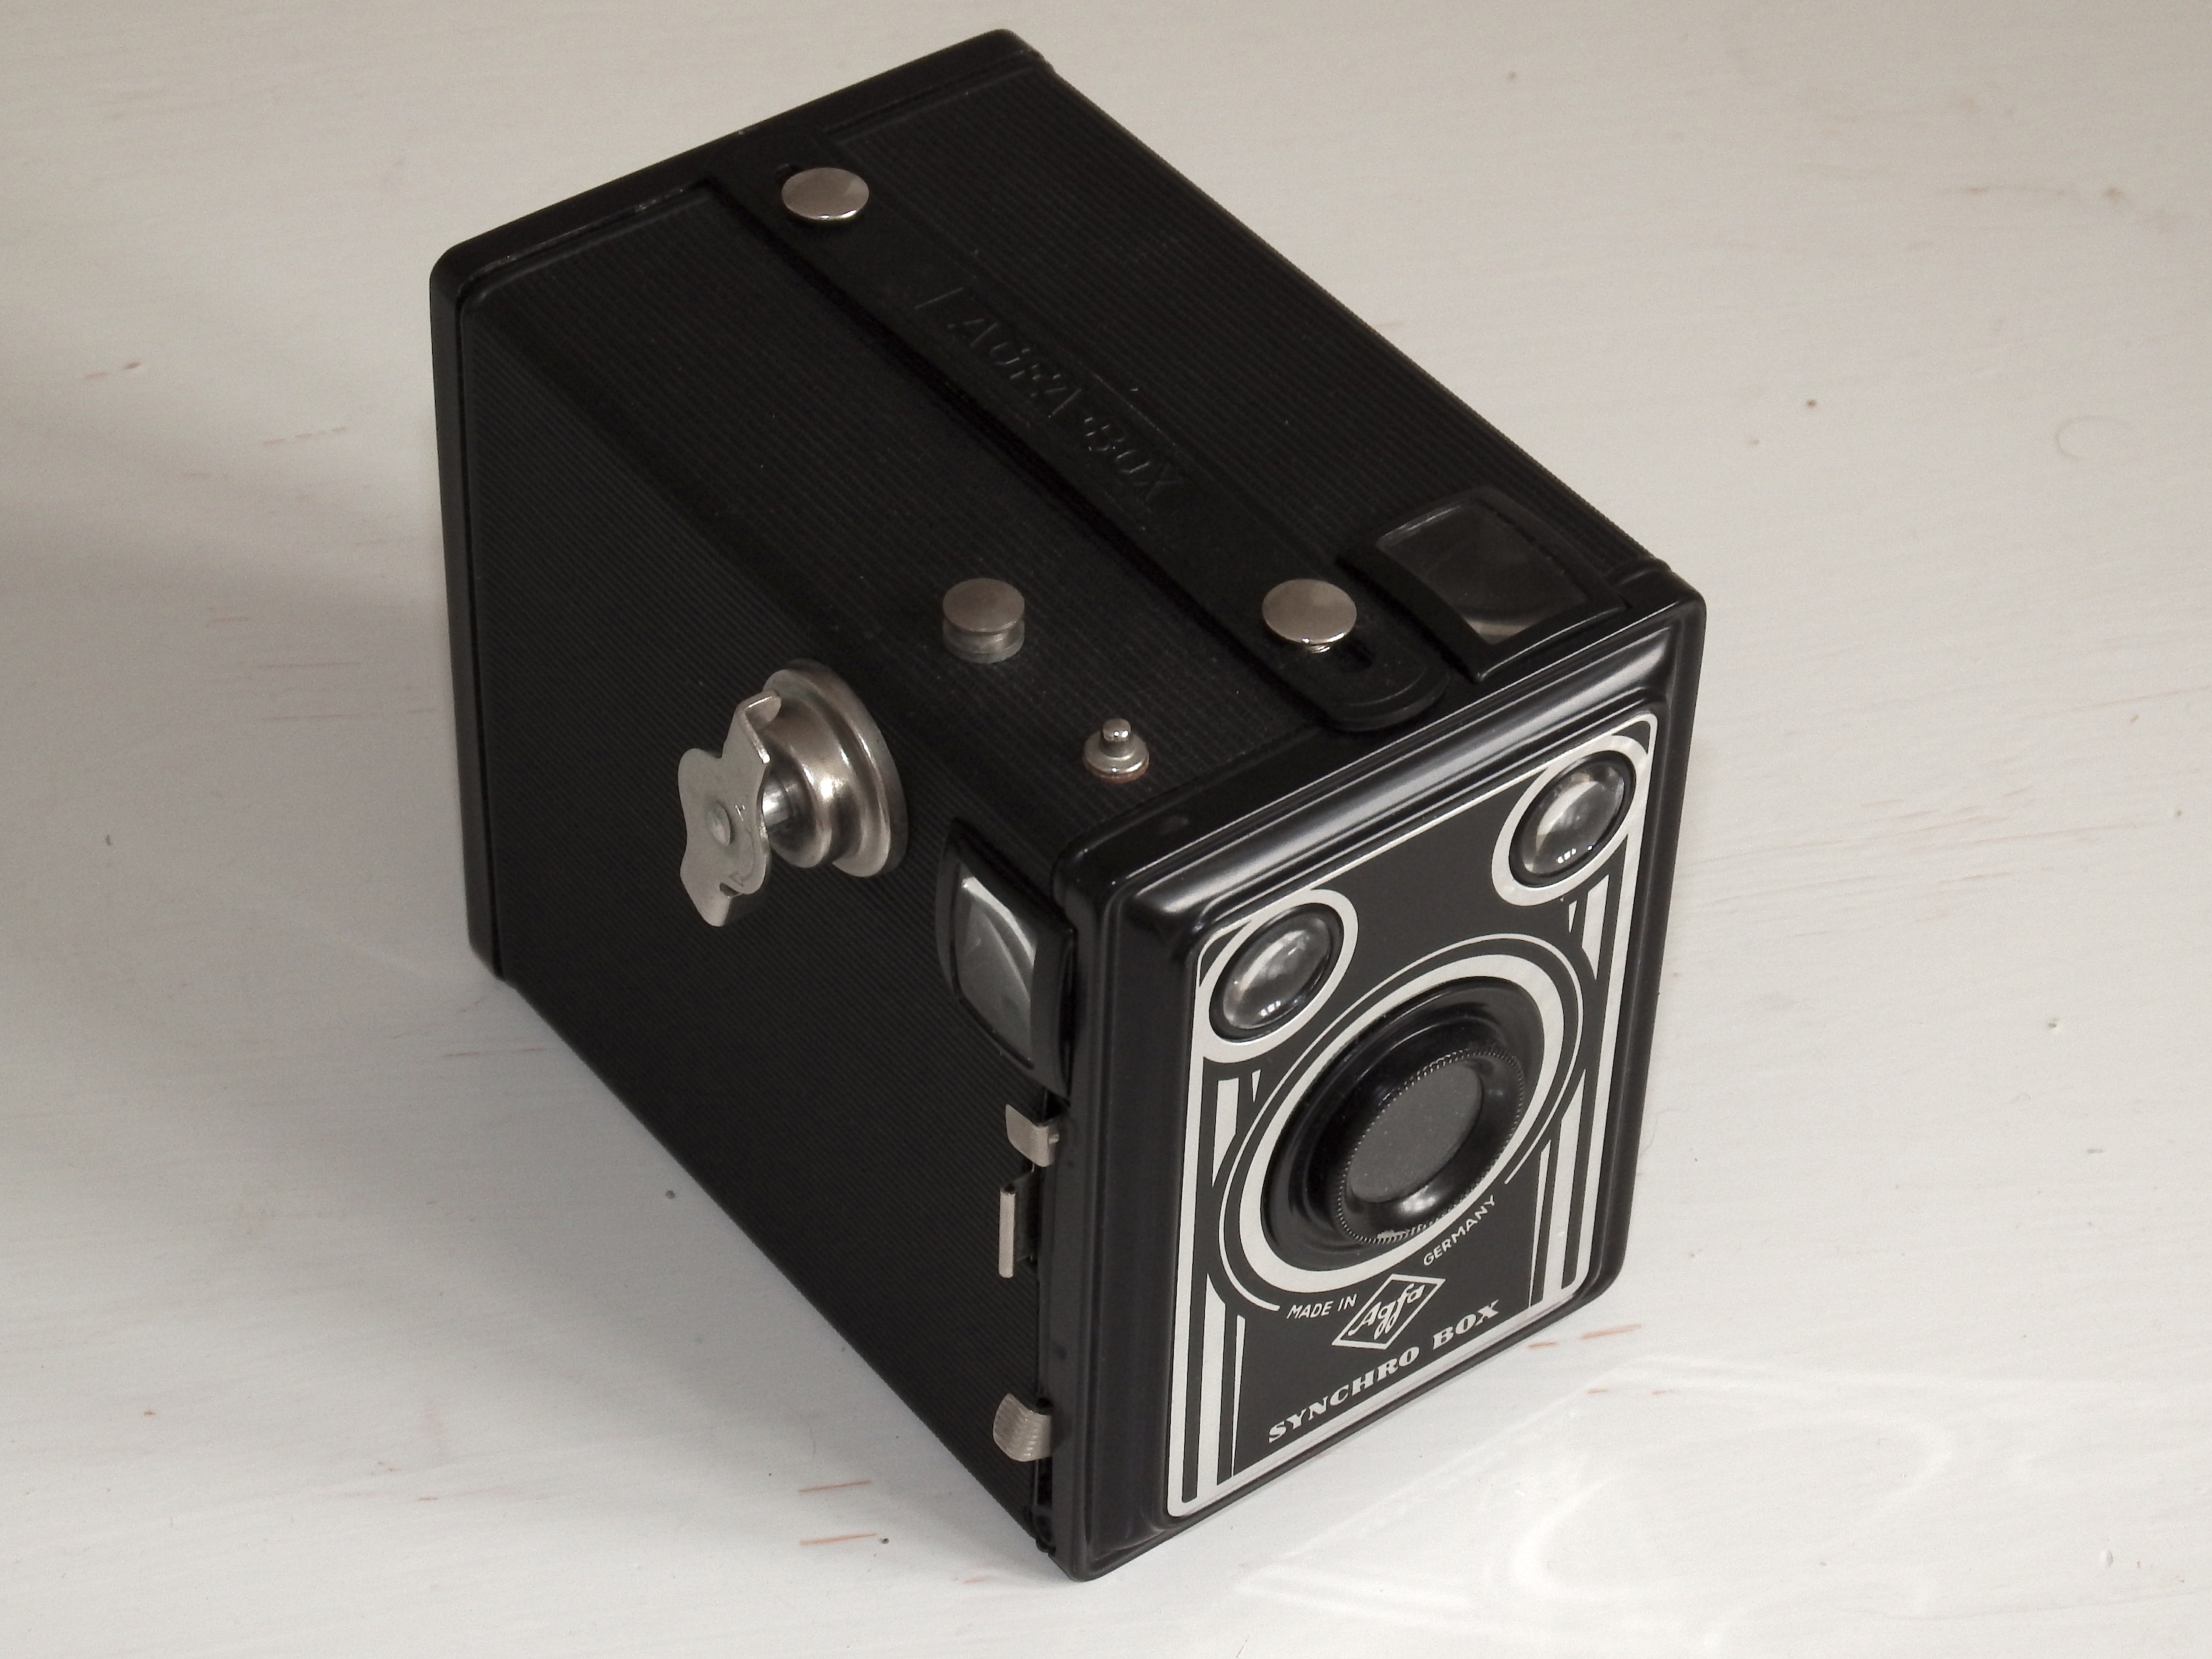 Agfa Synchro Box review